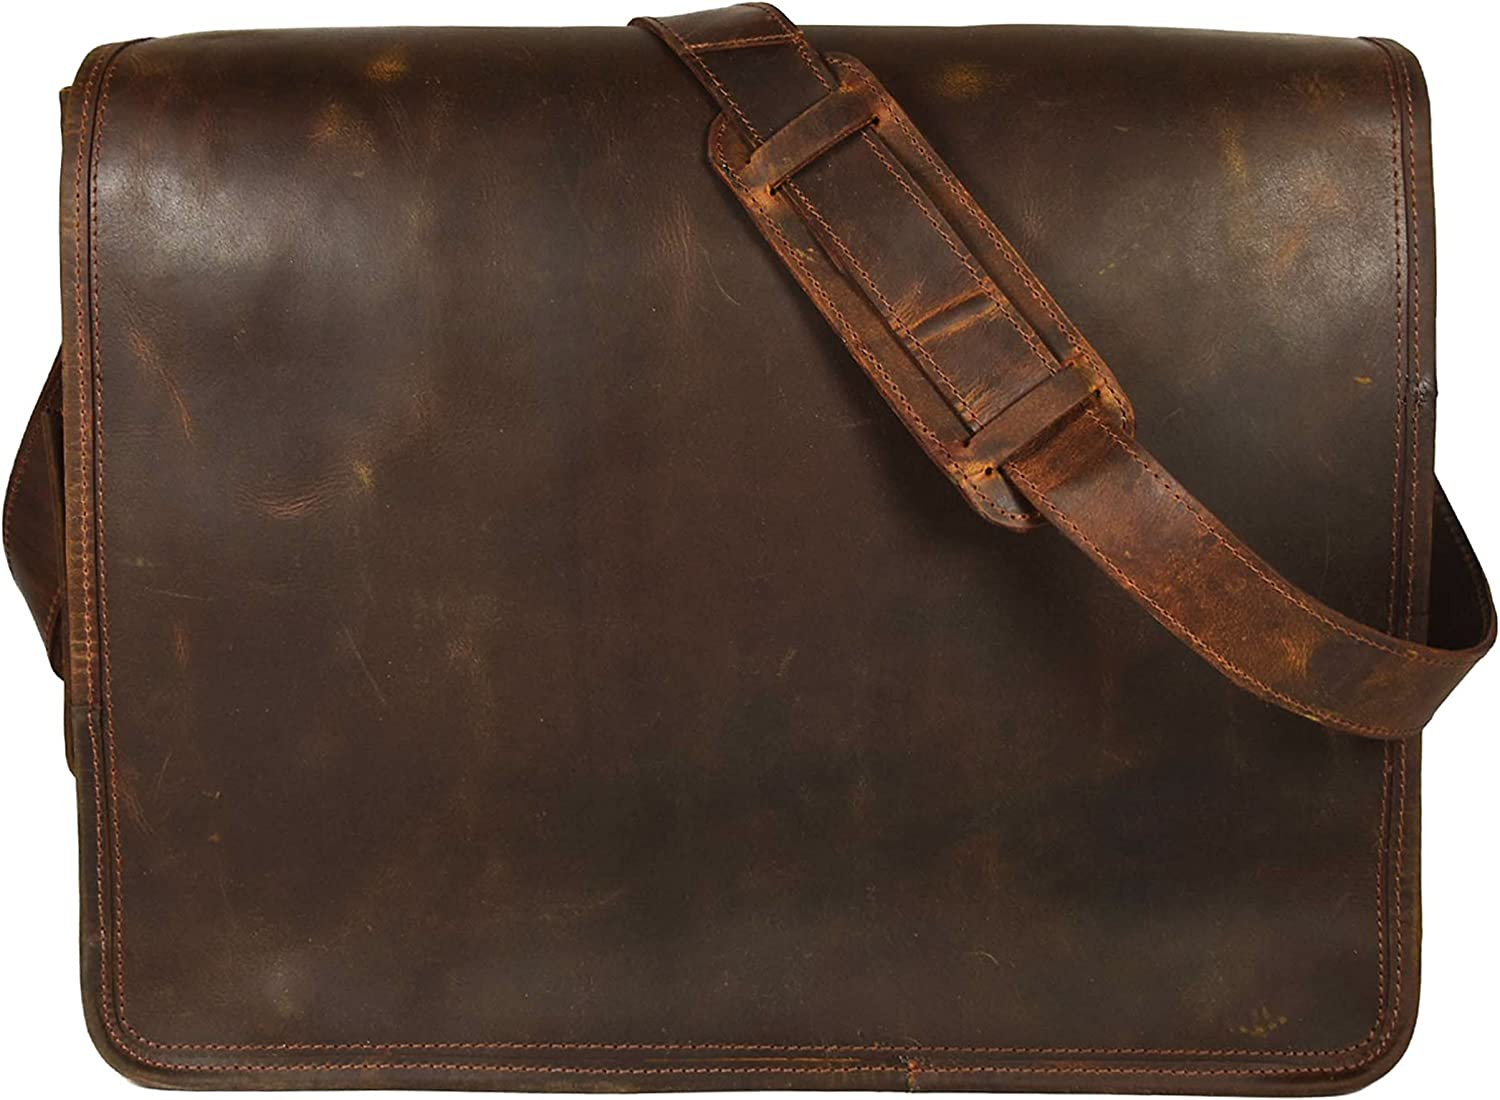 """KK's Leather hunter Leather Bags 18"""" Inch Leather Bags genuine leather bags Laptop Messenger Bags Vintage Brown Bags full flap bags Briefcase bags everyday bags weekend bags for men and women"""